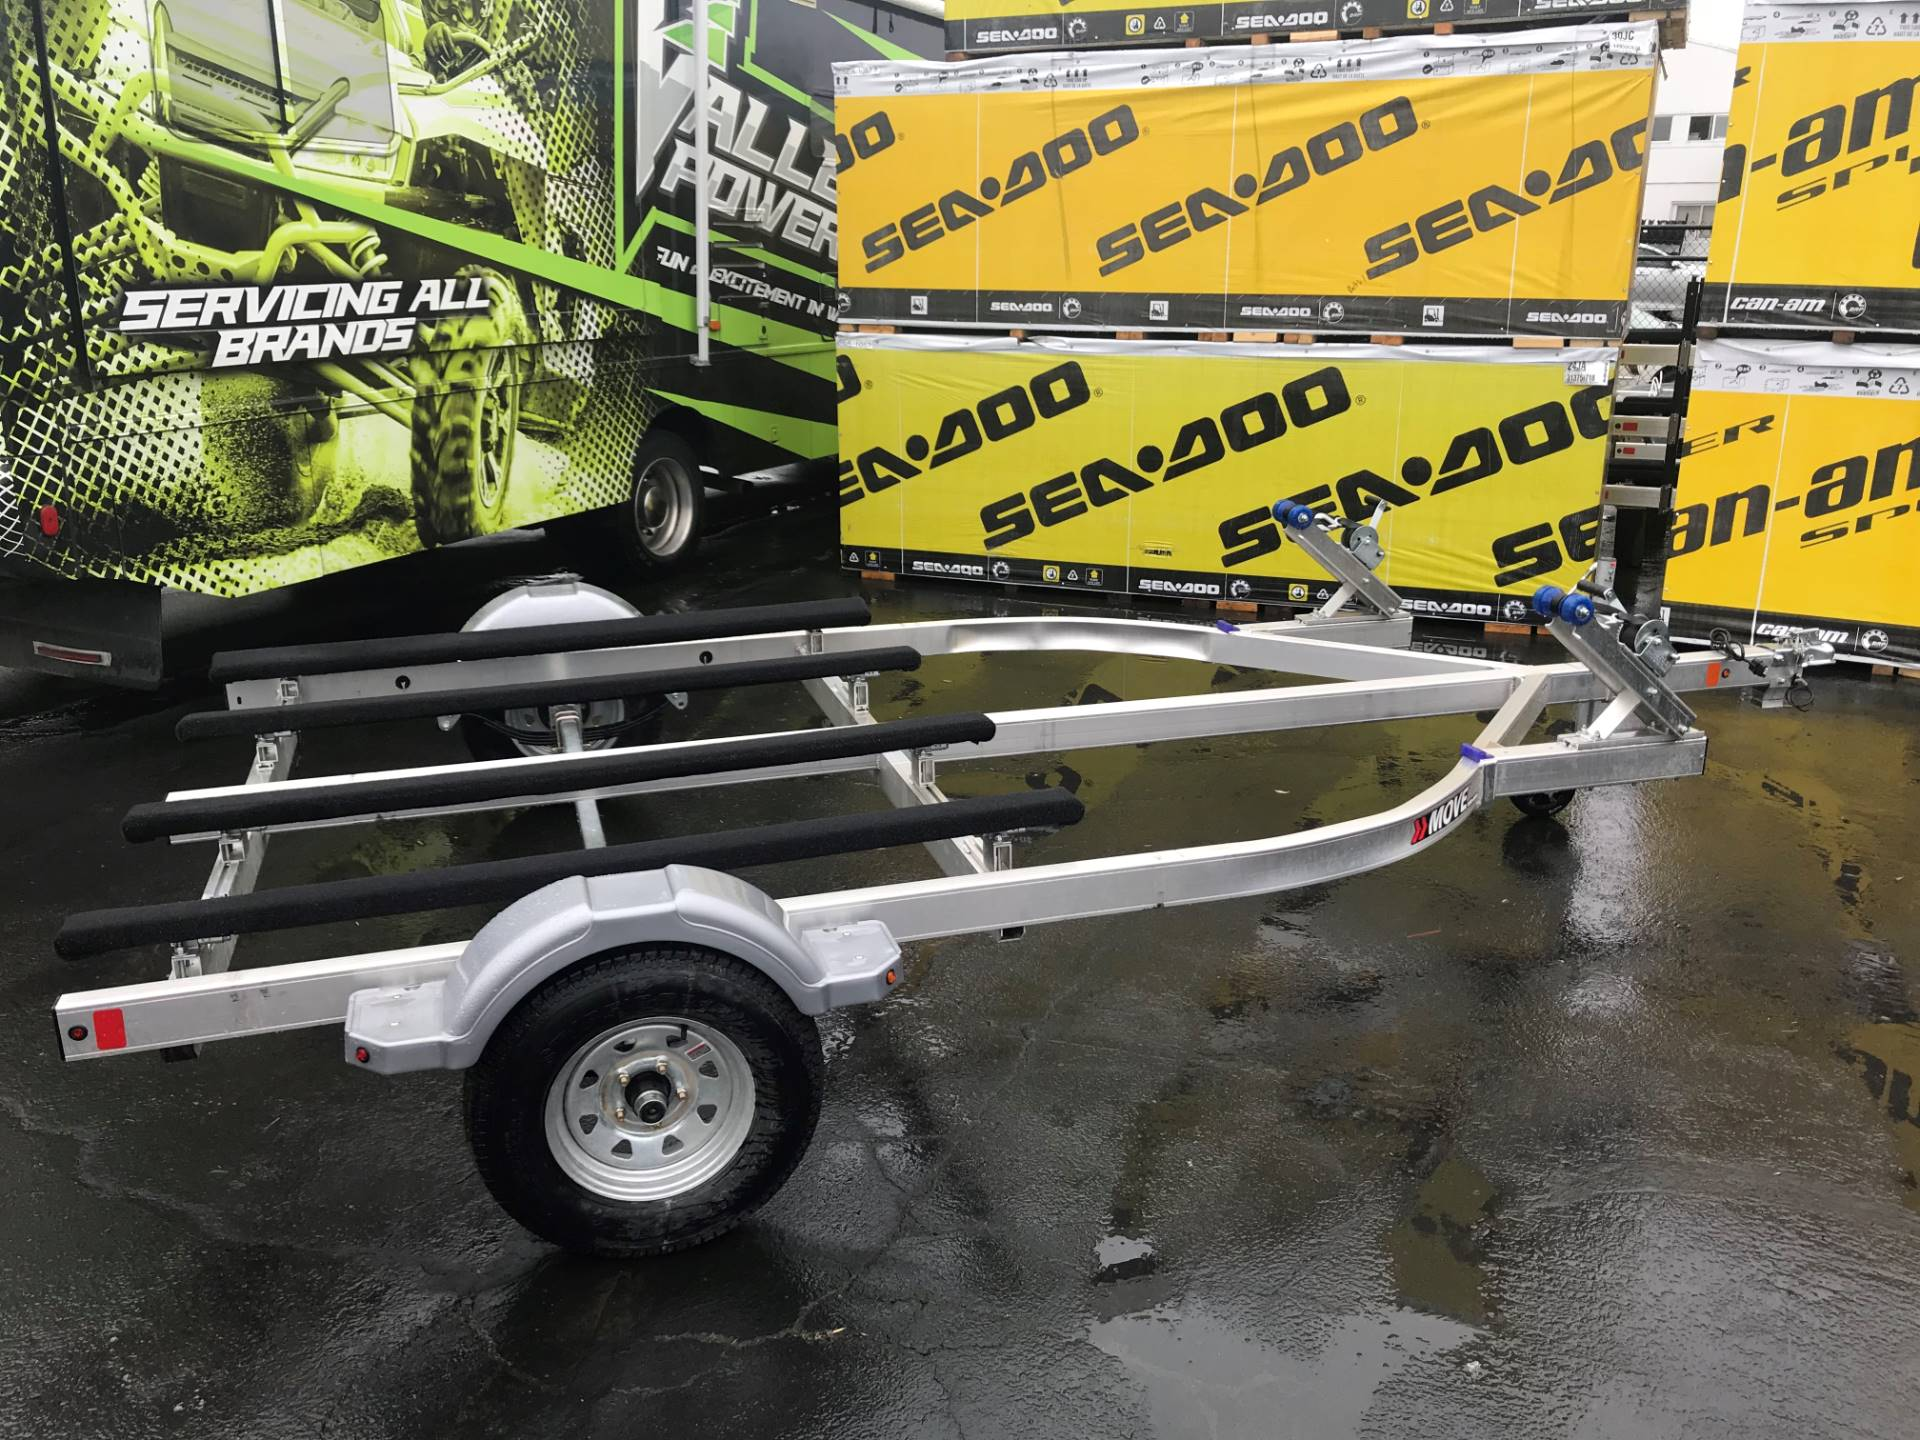 2018 Karavan Trailers Trailer Sea-Doo Move II in Eugene, Oregon